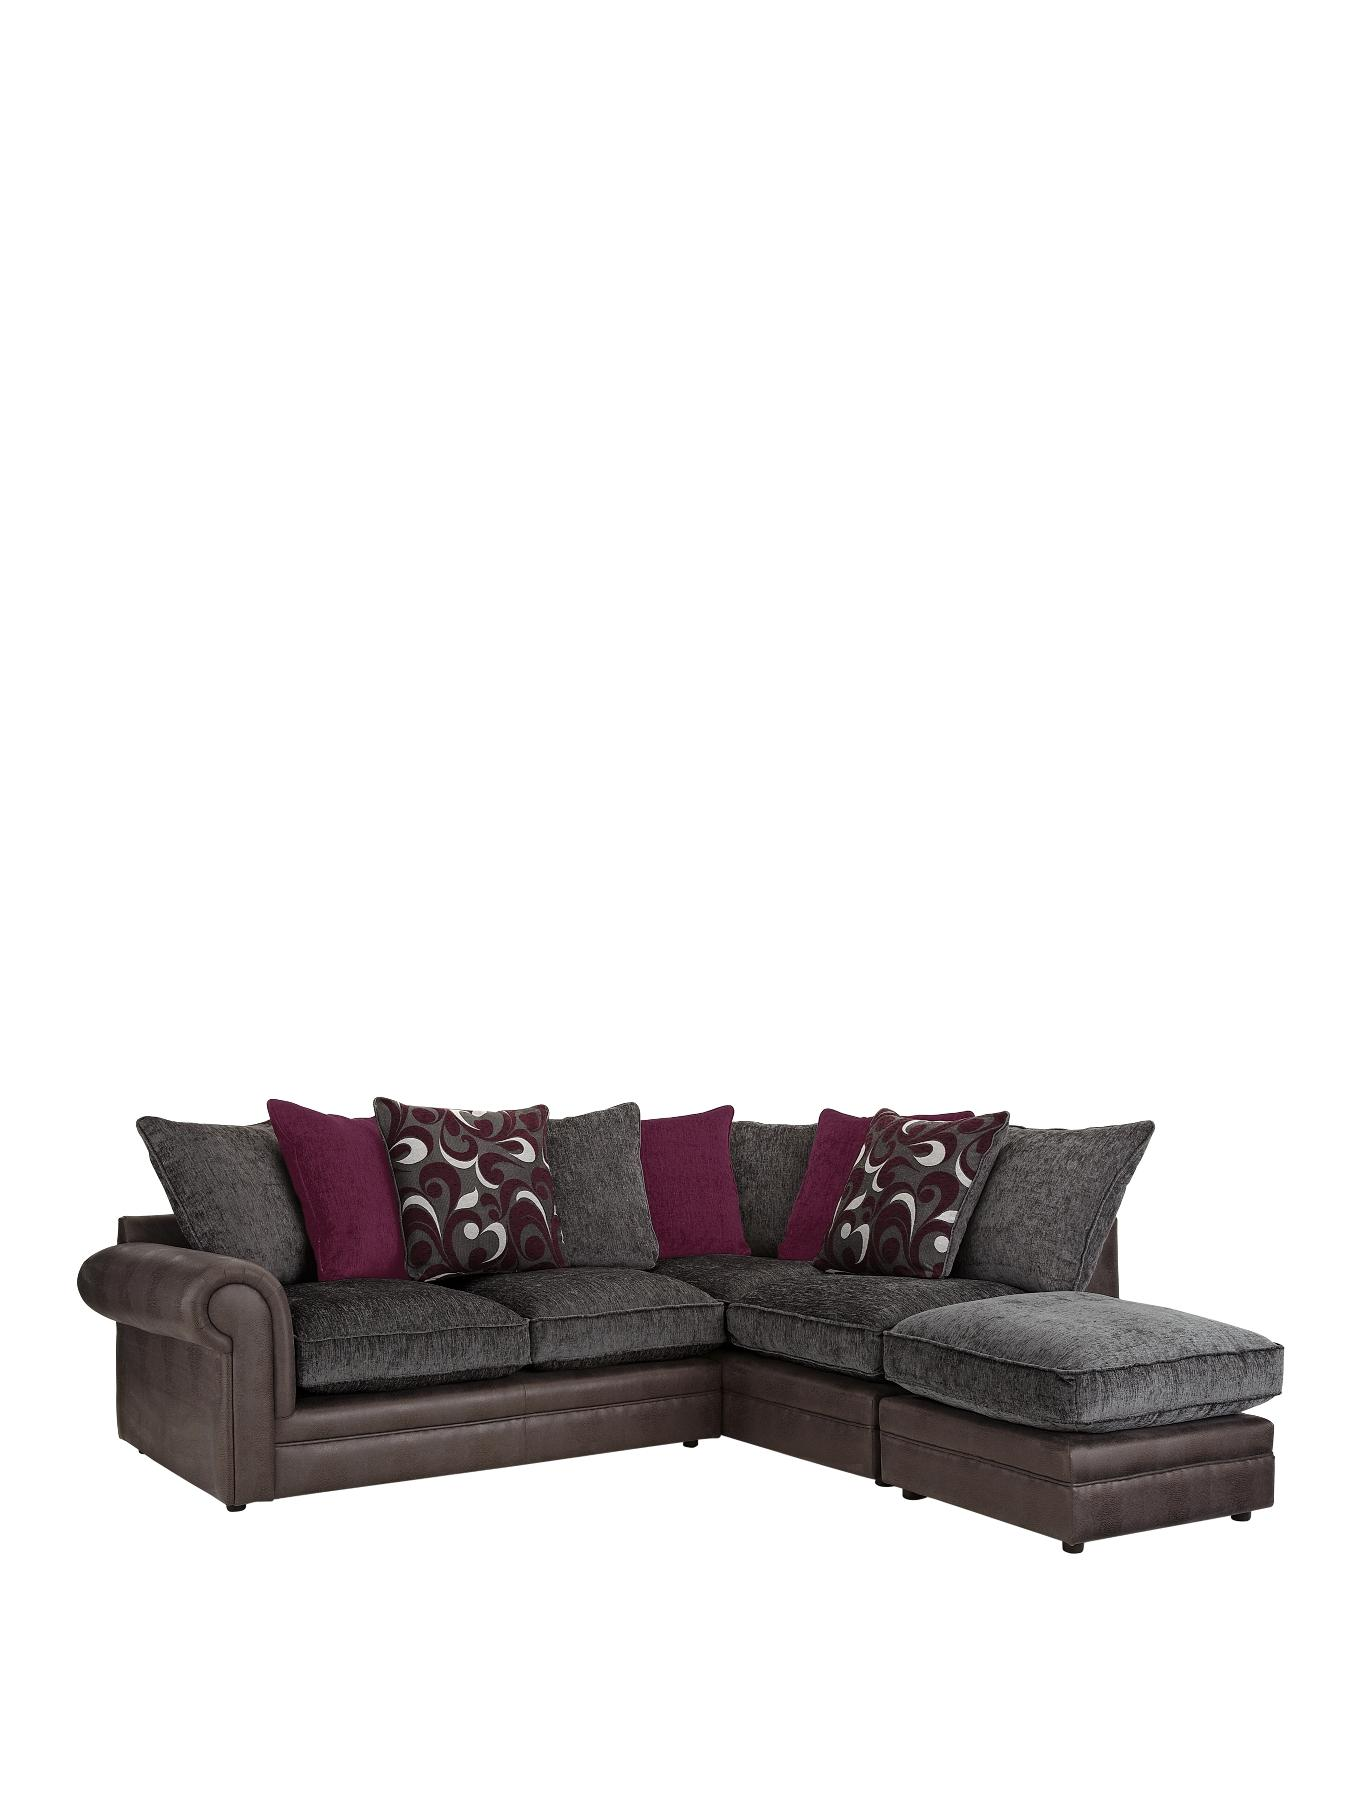 Catarina RightHand Corner Group Sofa and Footstool BlackChocolate